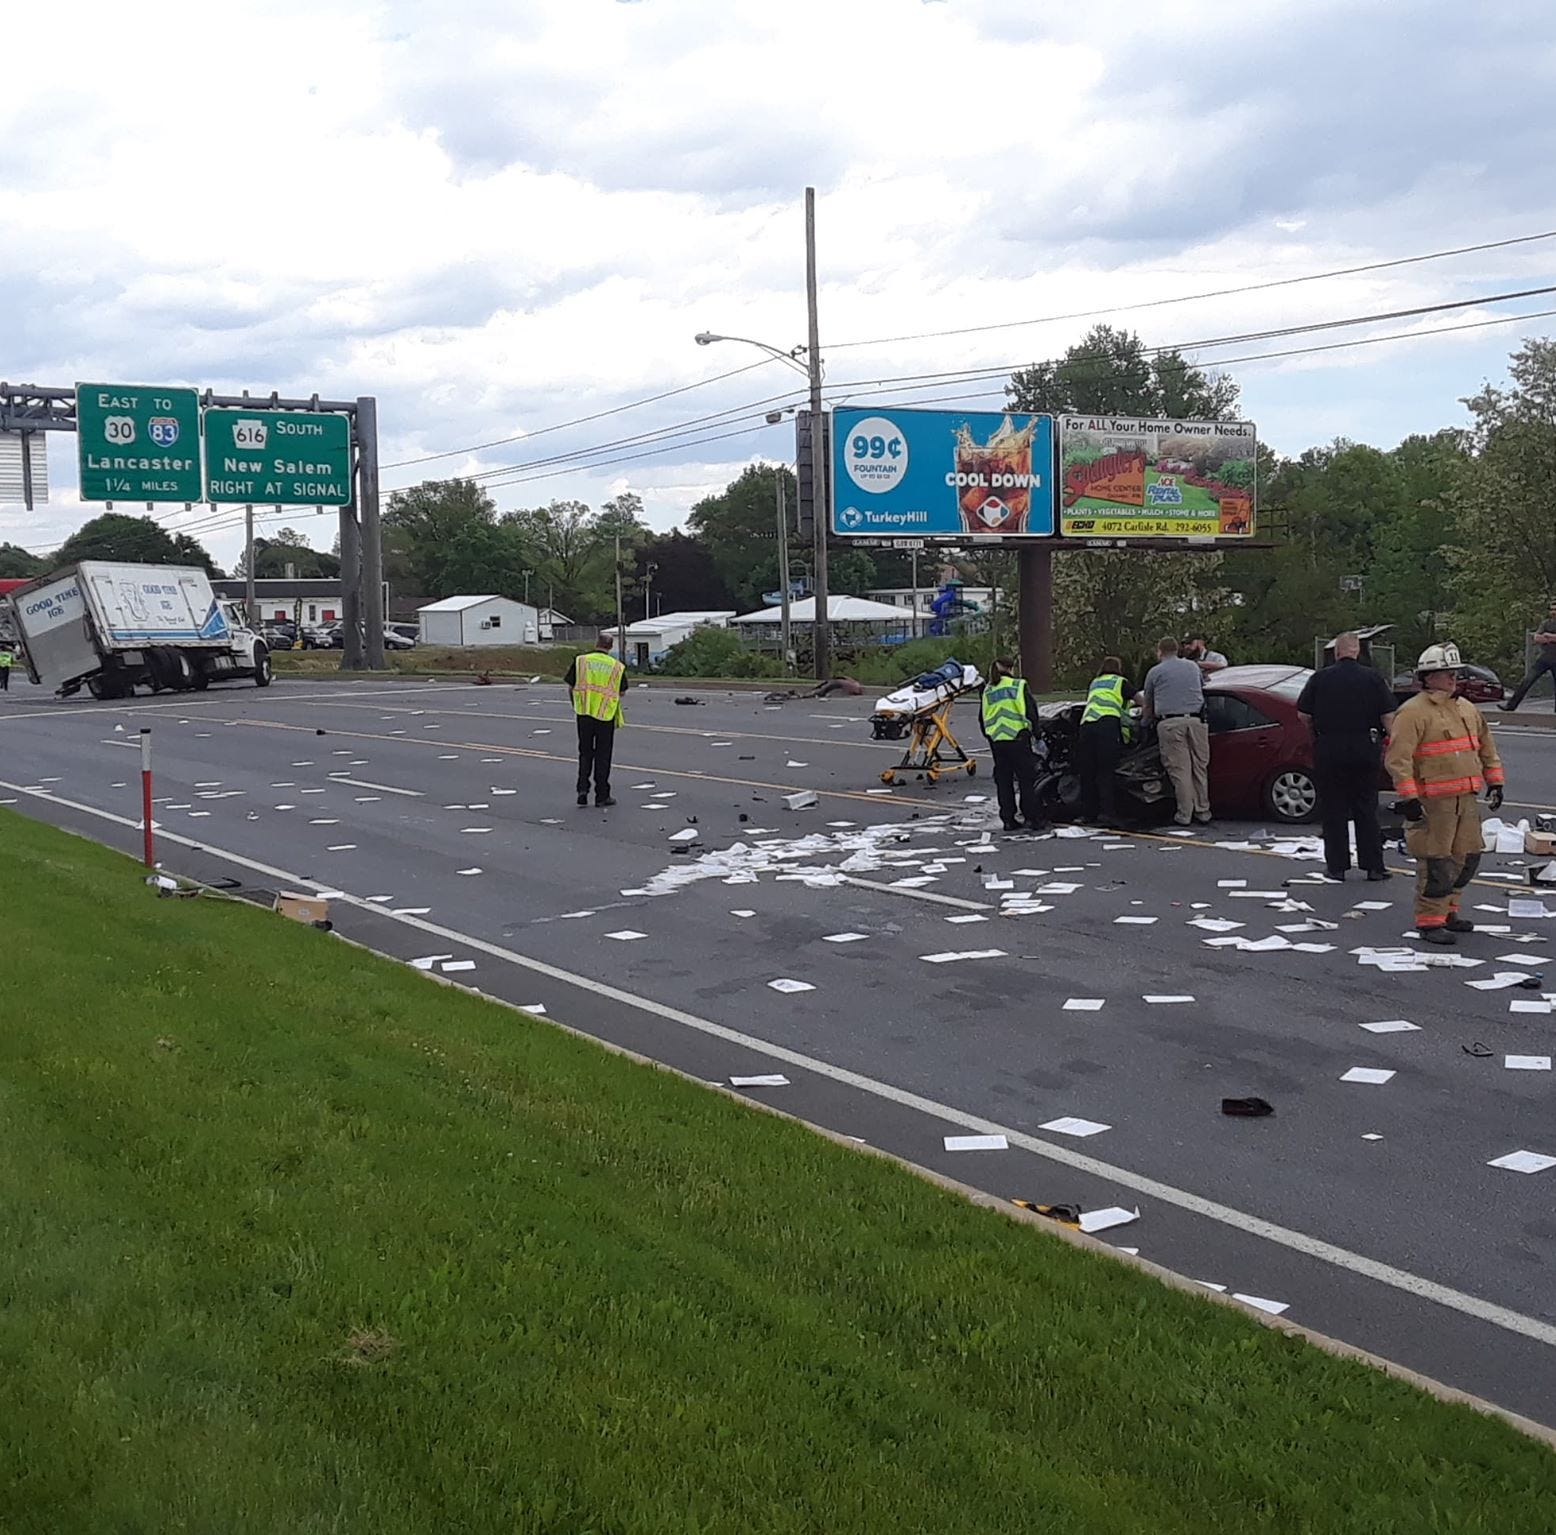 An ice truck and four door vehicle were involved in a crash in West Manchester Township on Wednesday, May 15, according to the York County 911 .